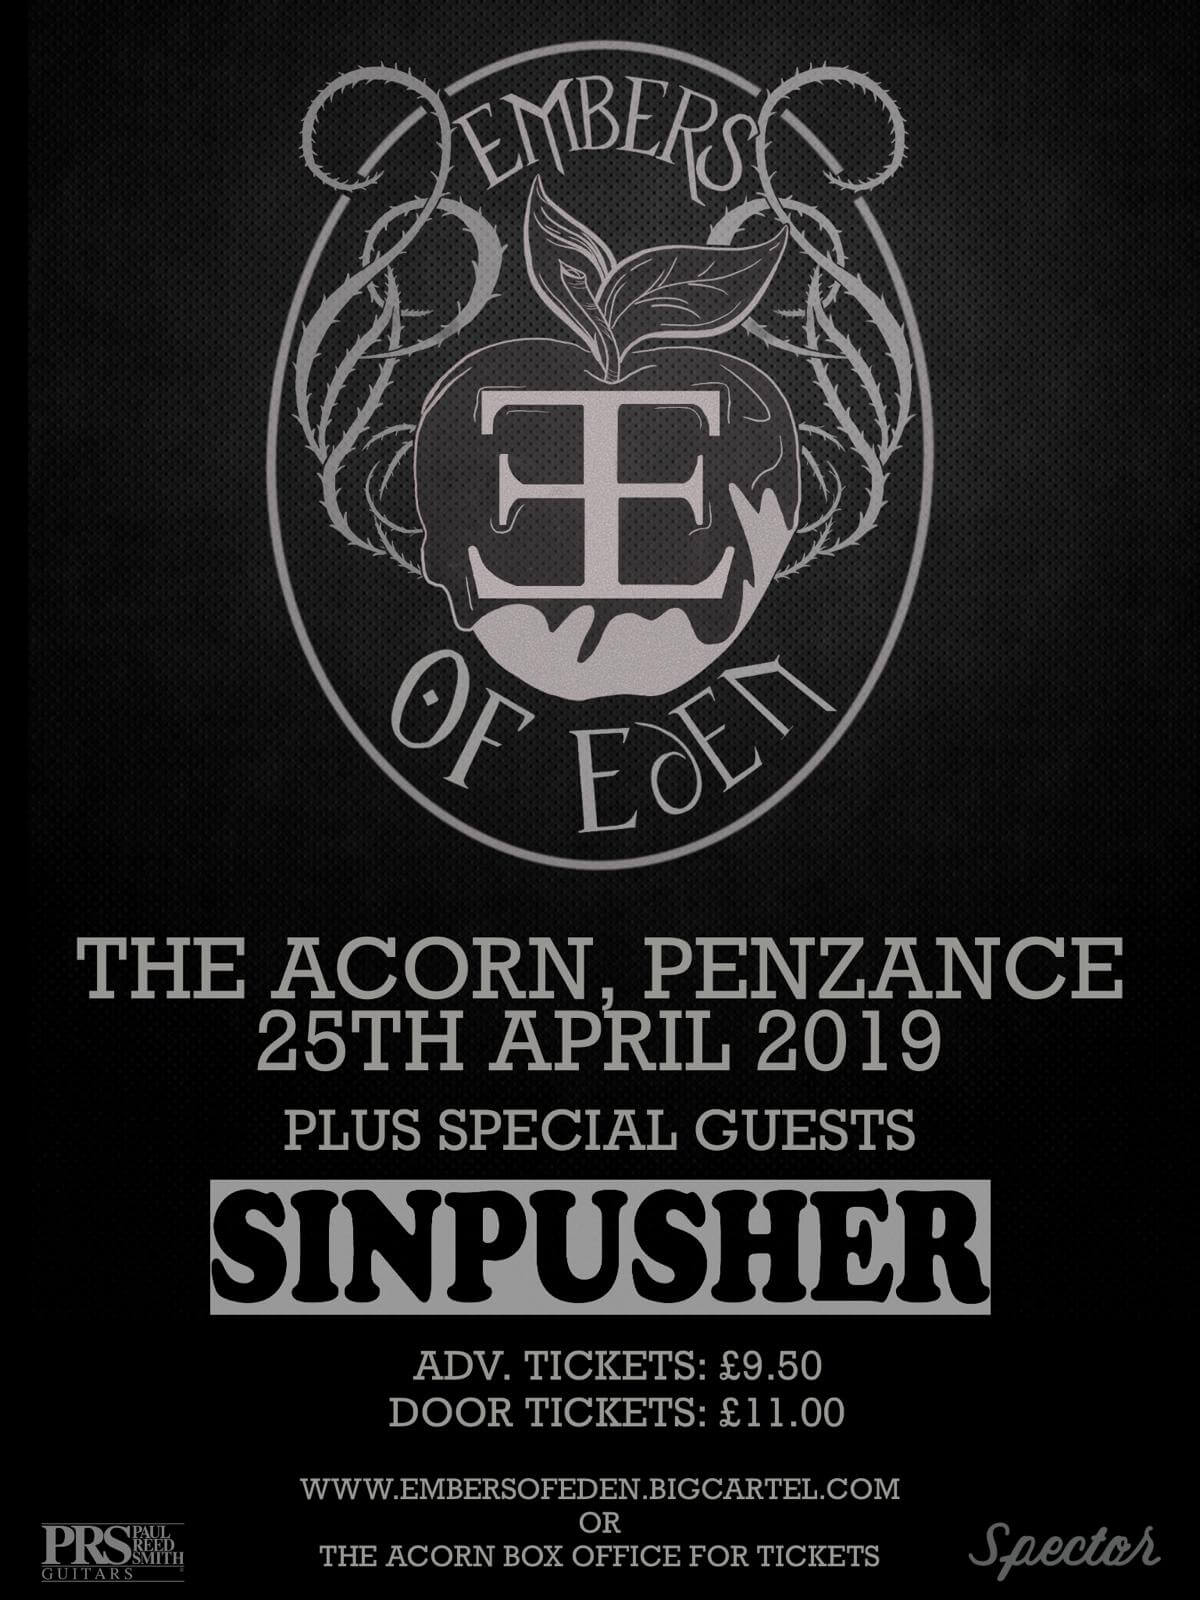 Embers Of Eden + Special Guests Sinpusher